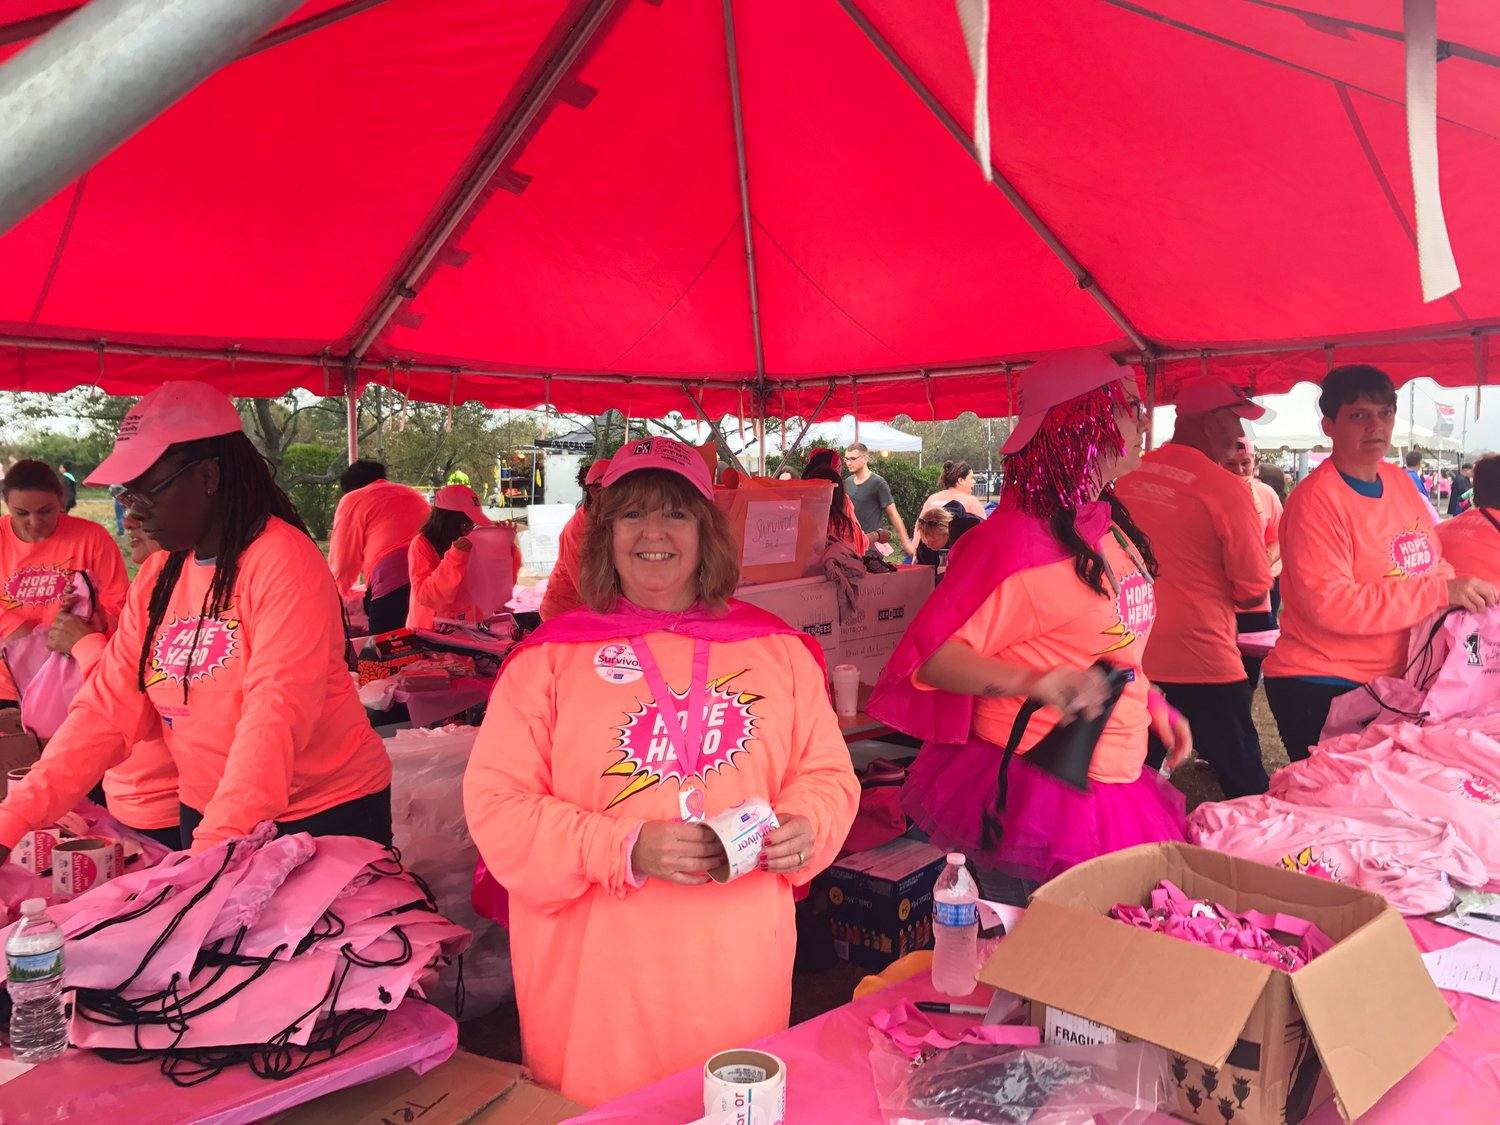 Courtesy Patrice Lestrange Mack